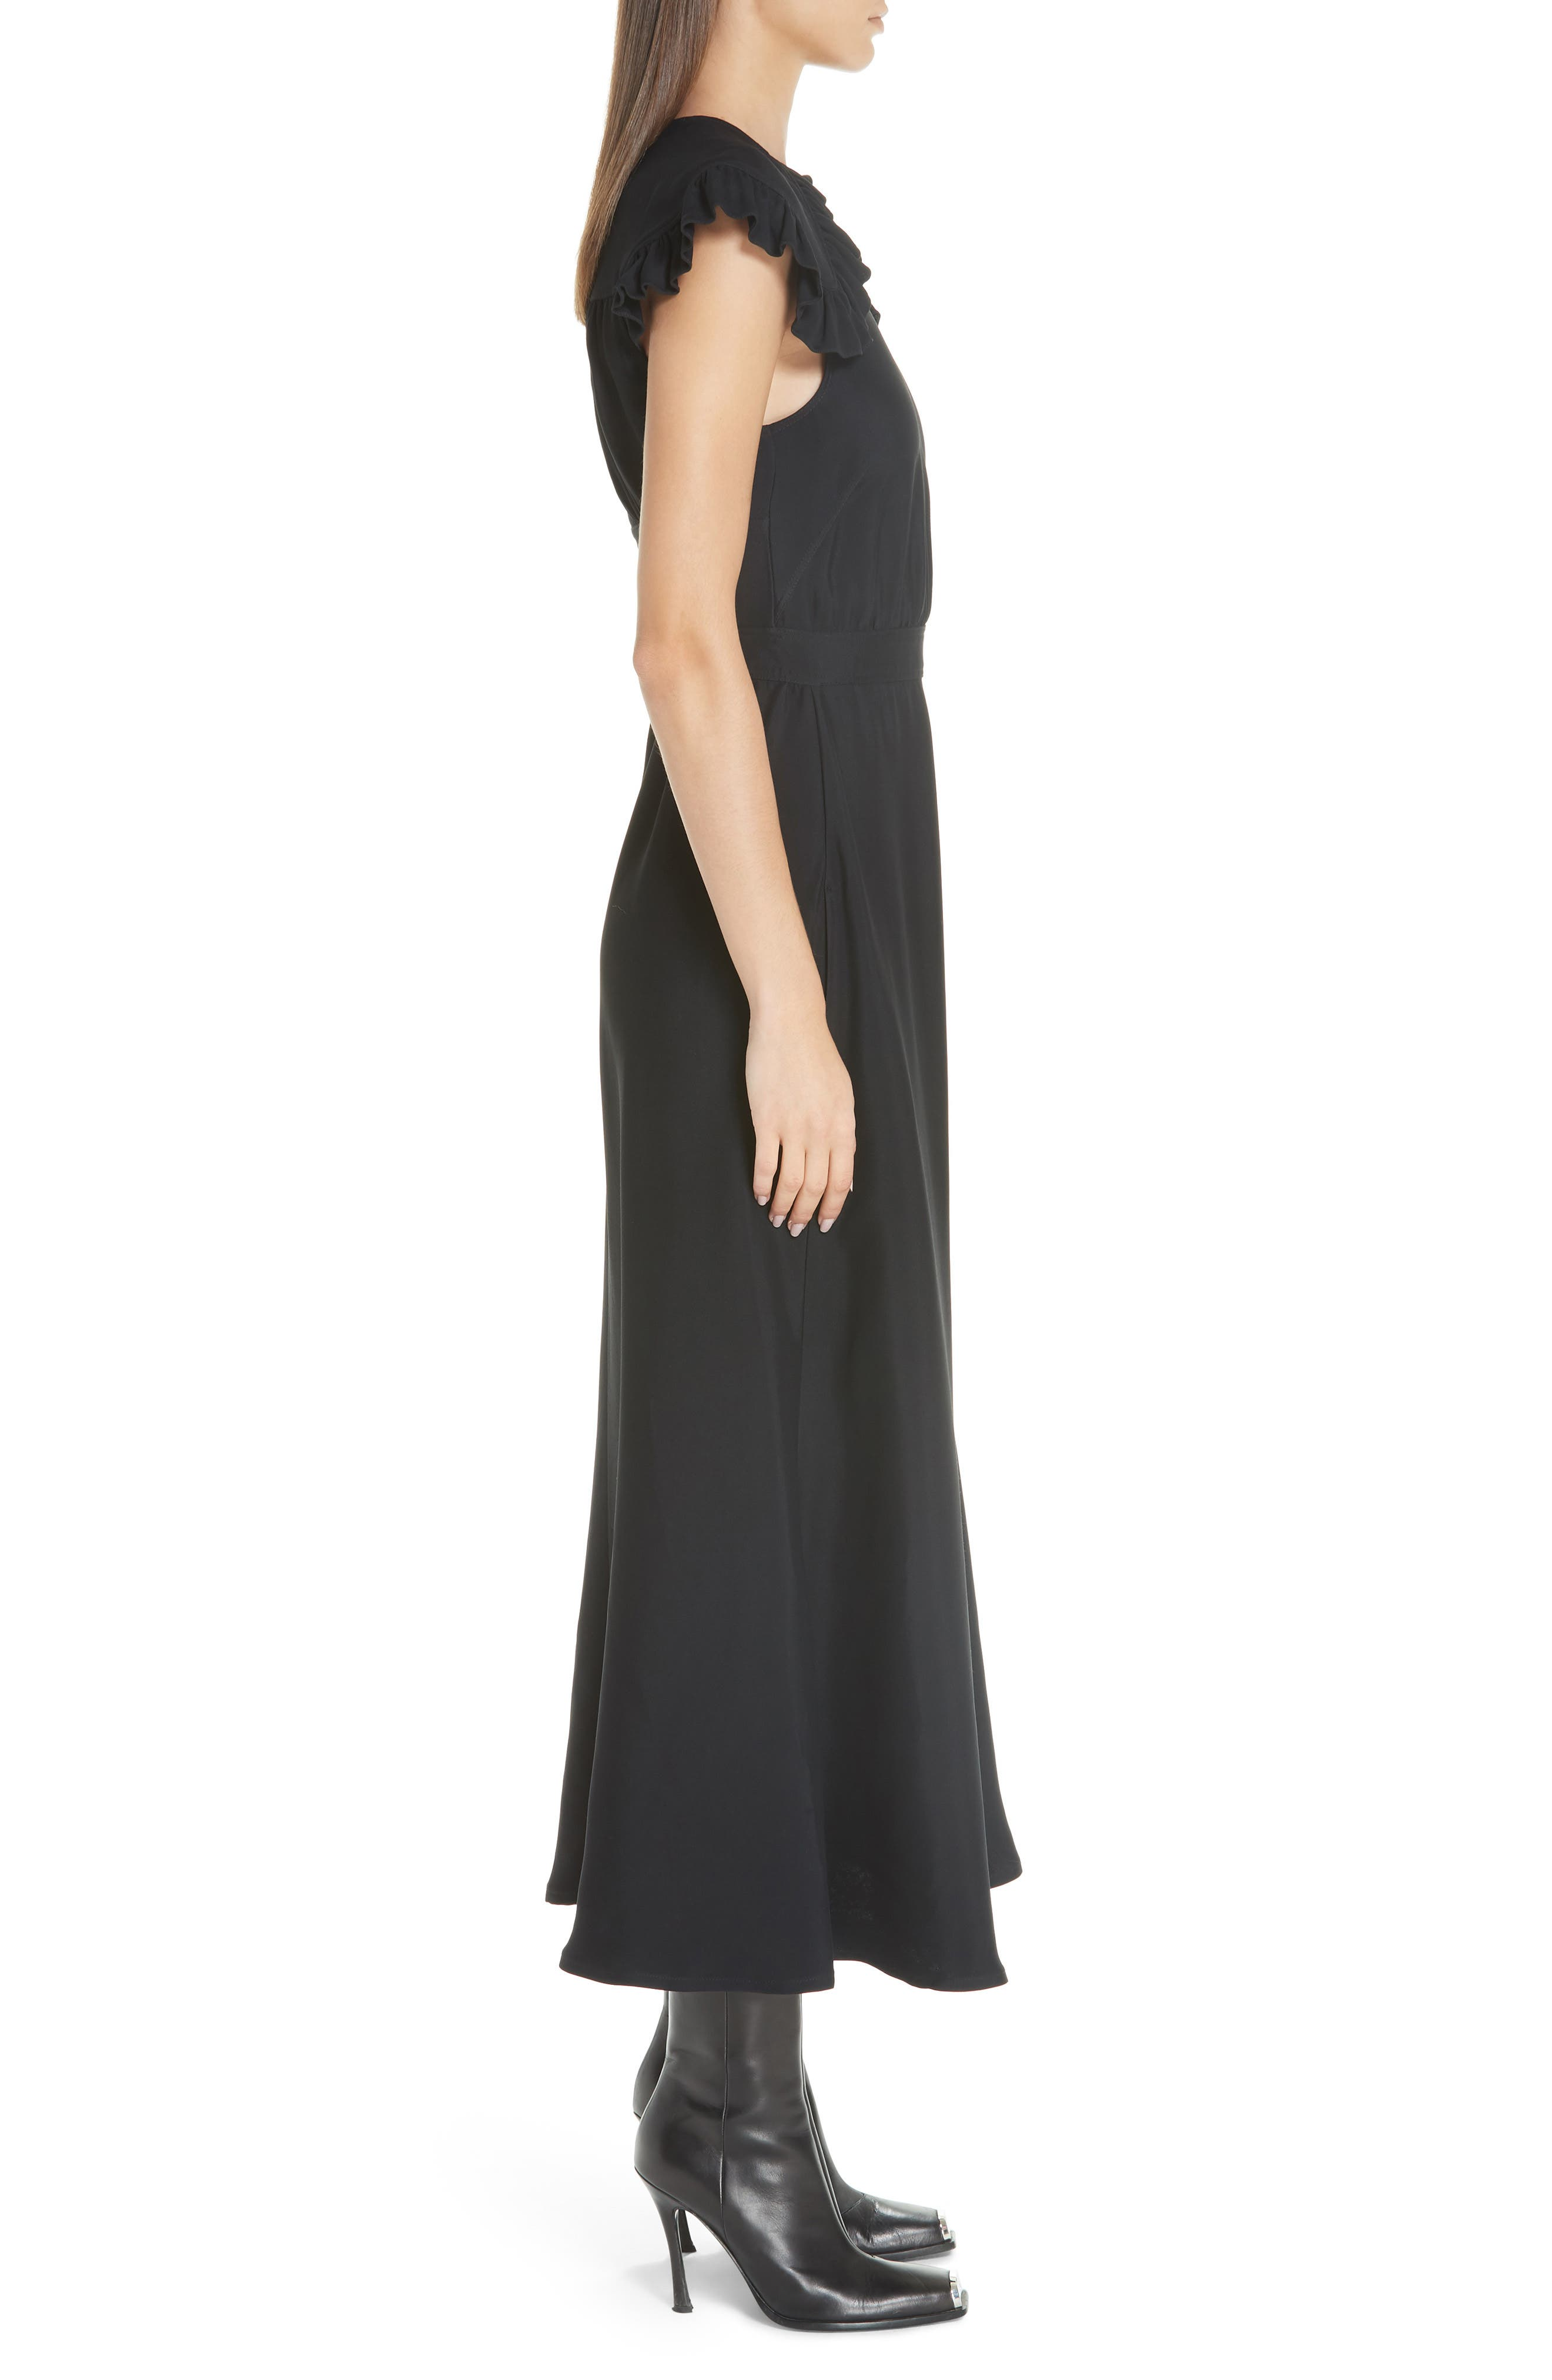 Cady Ruffle Pioneer Dress,                             Alternate thumbnail 3, color,                             BLACK